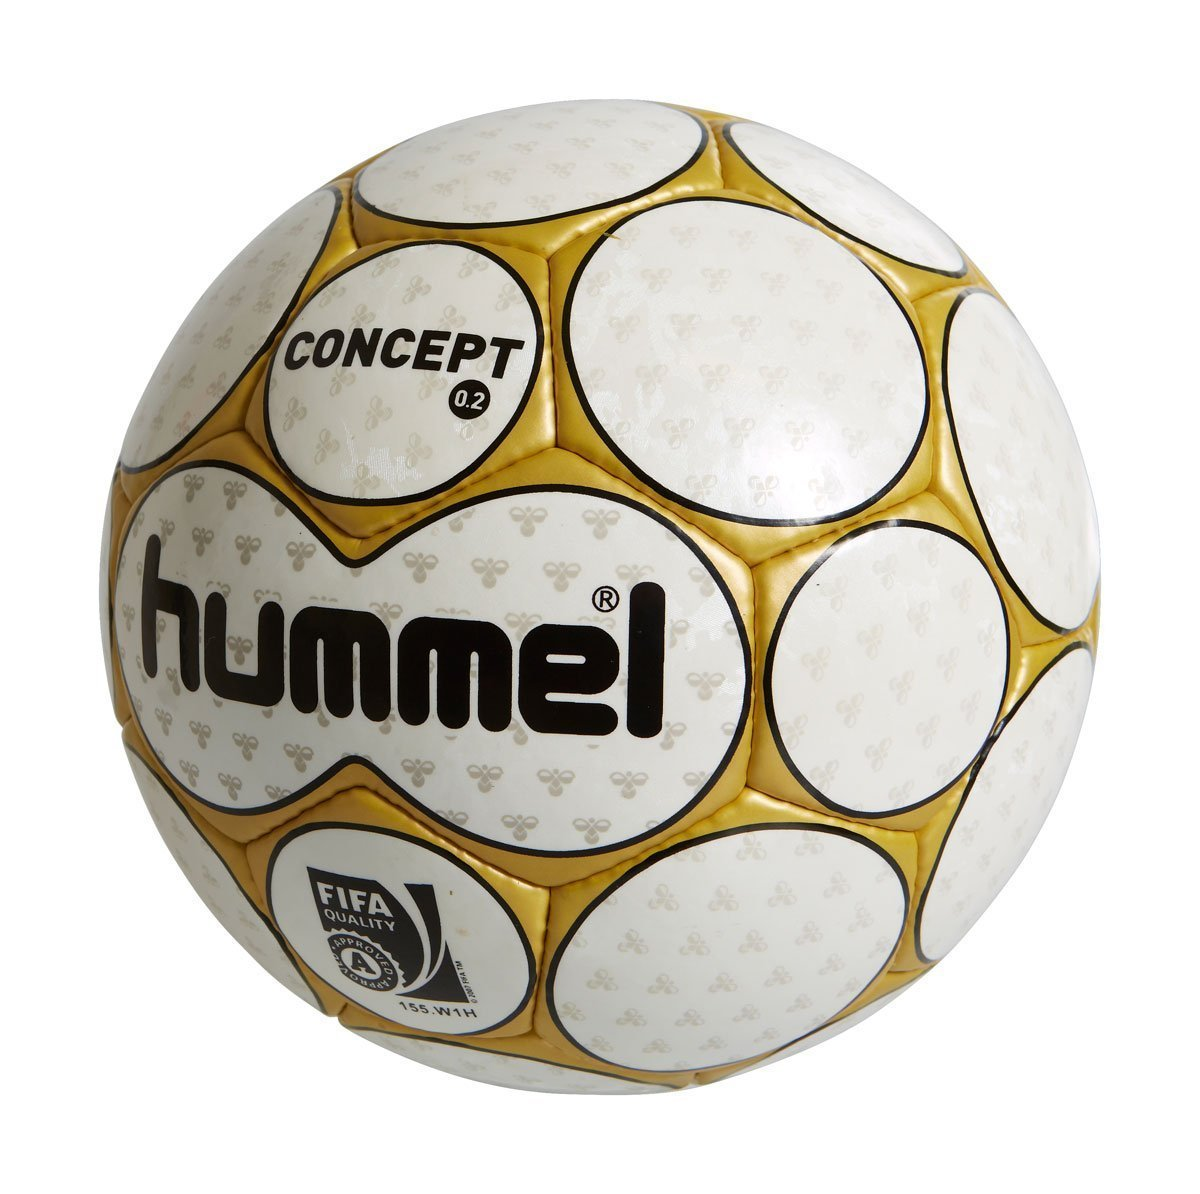 Hummel Hummel 0.2 concept (fifa approved) fra billigsport24